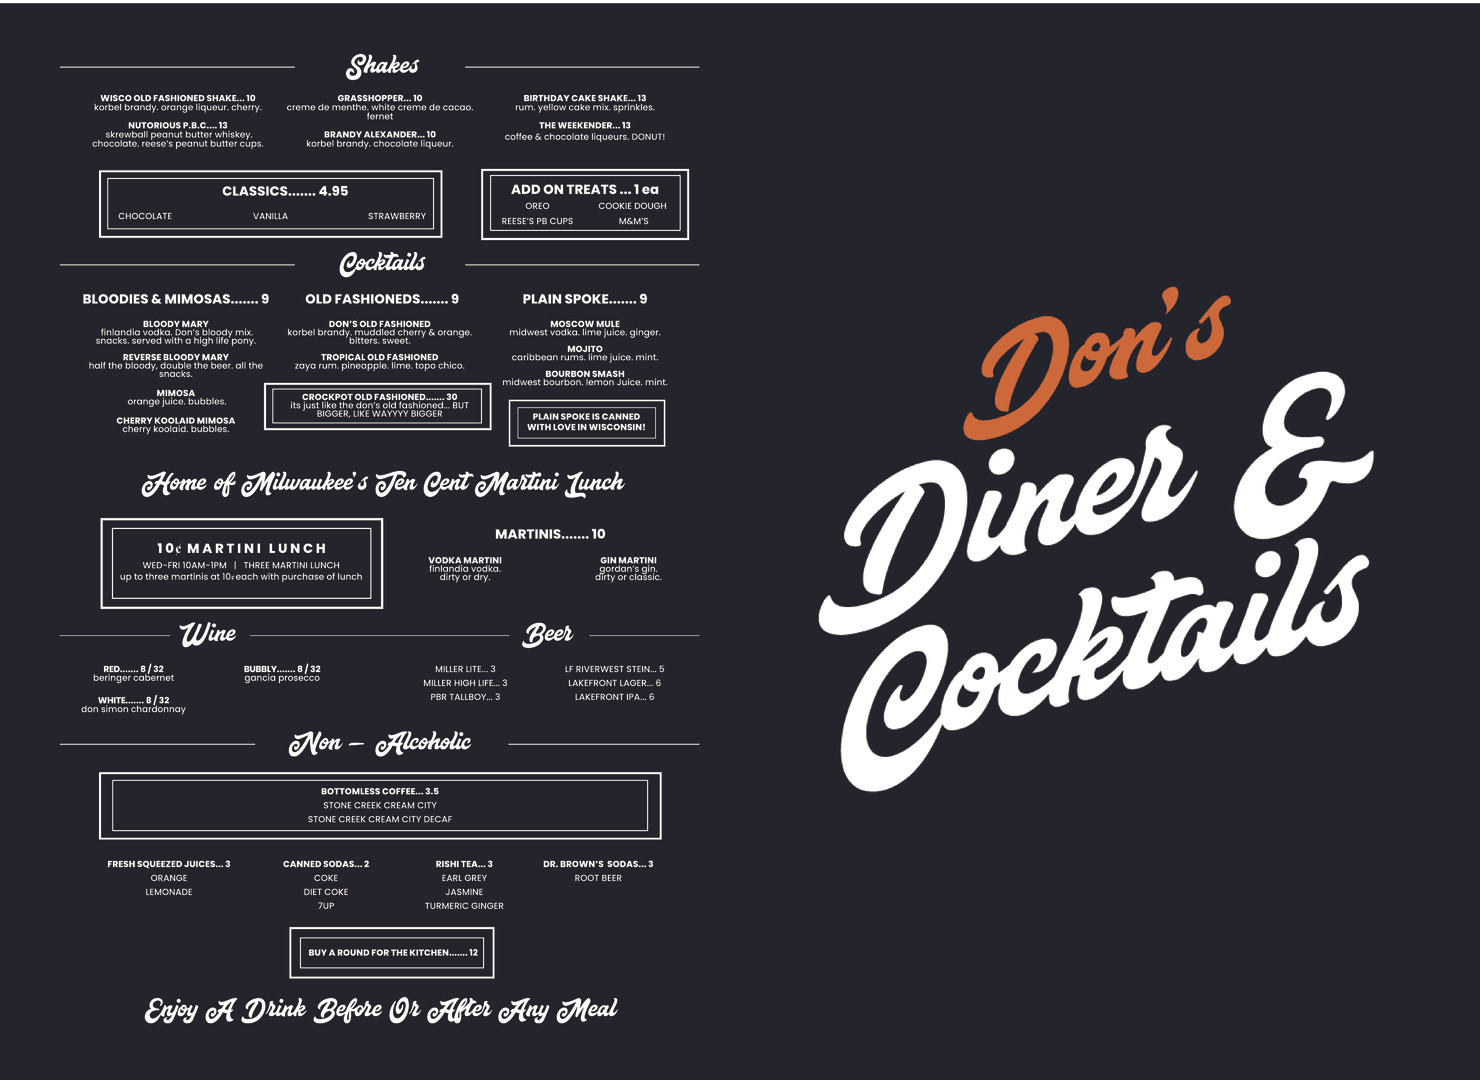 Don's Cocktail Menu Outside